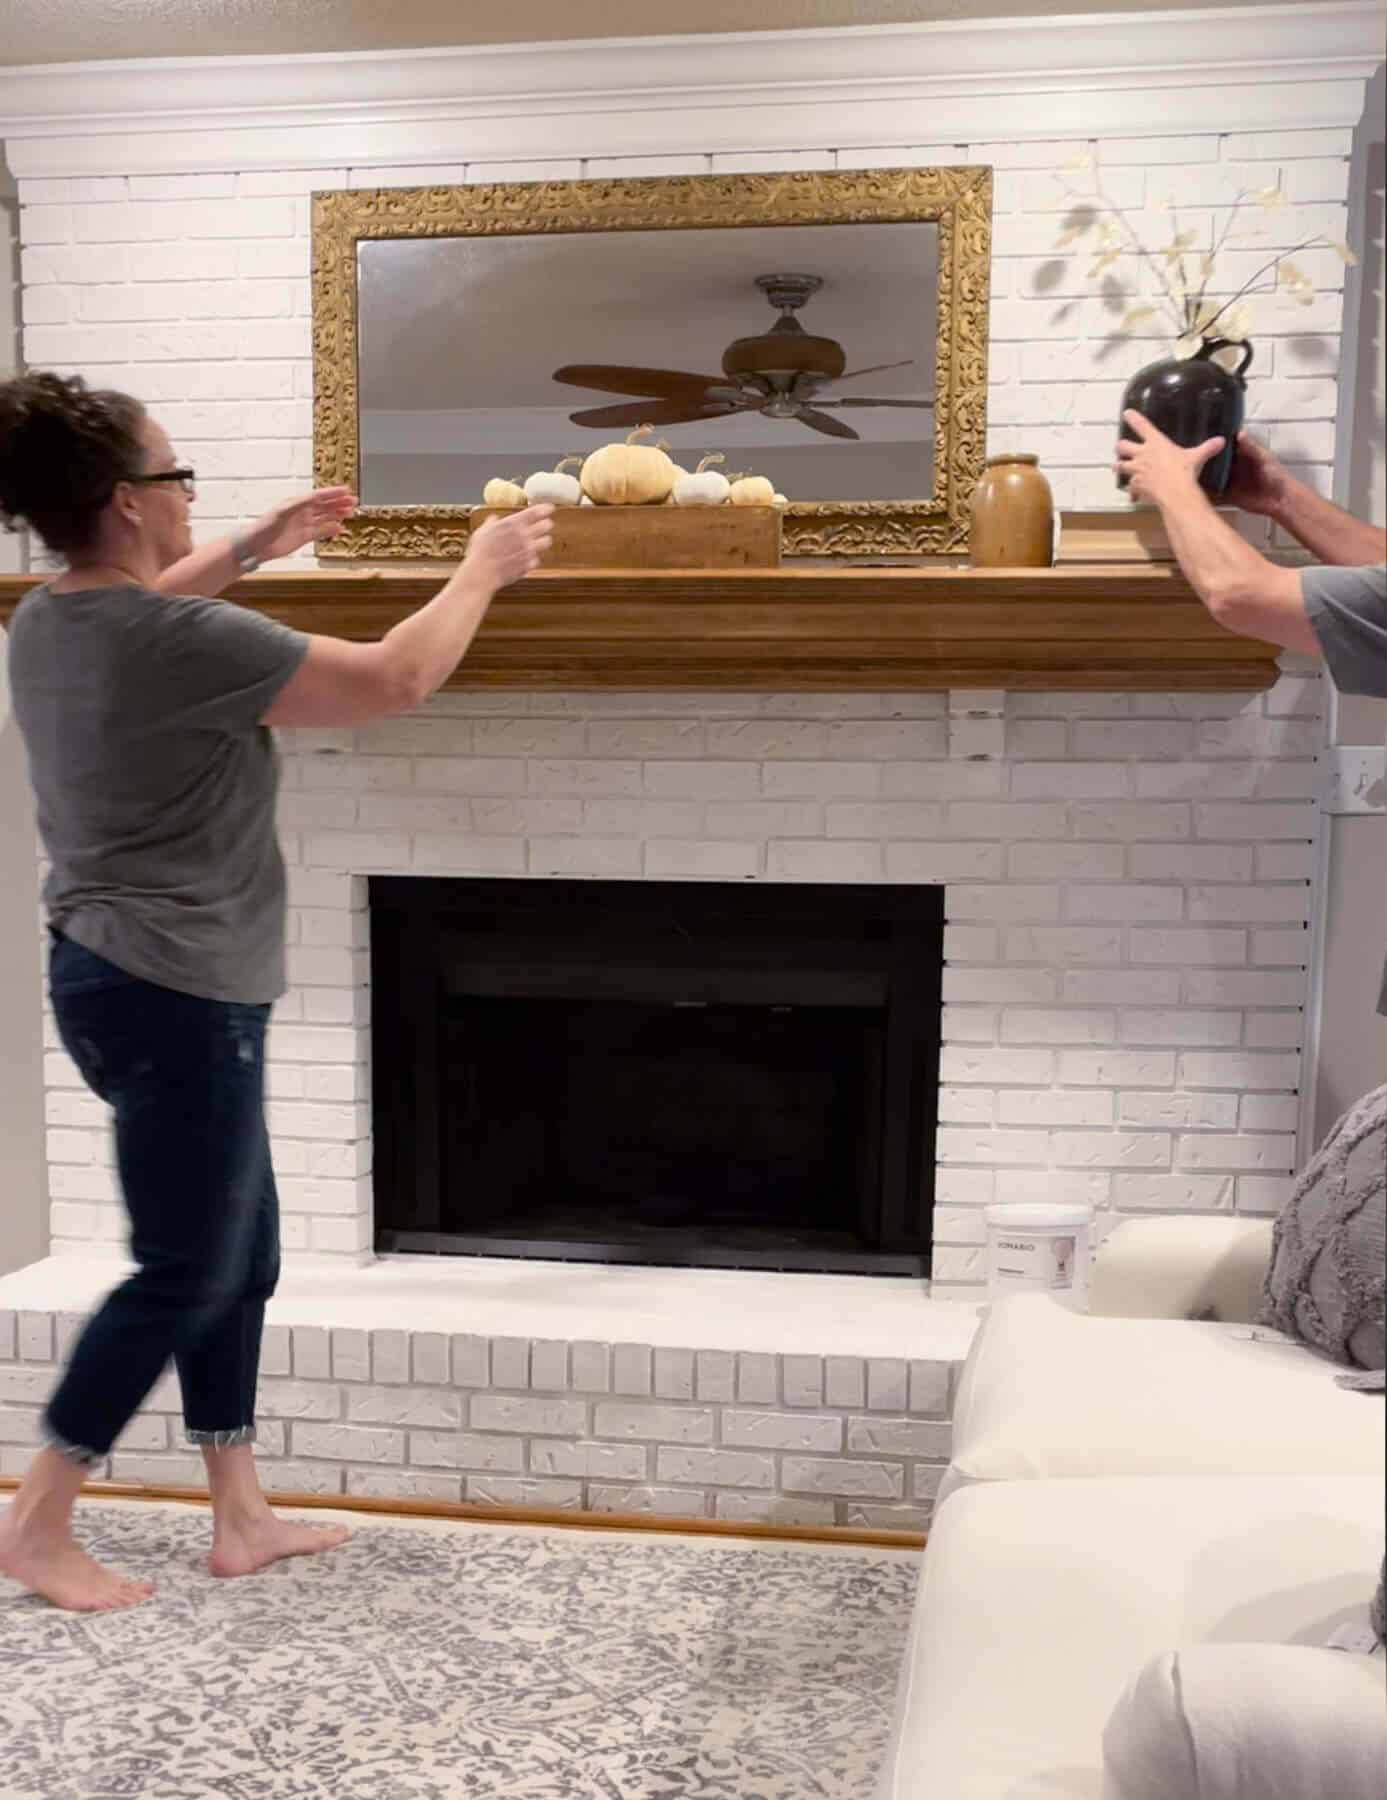 removing items from a fireplace mantel